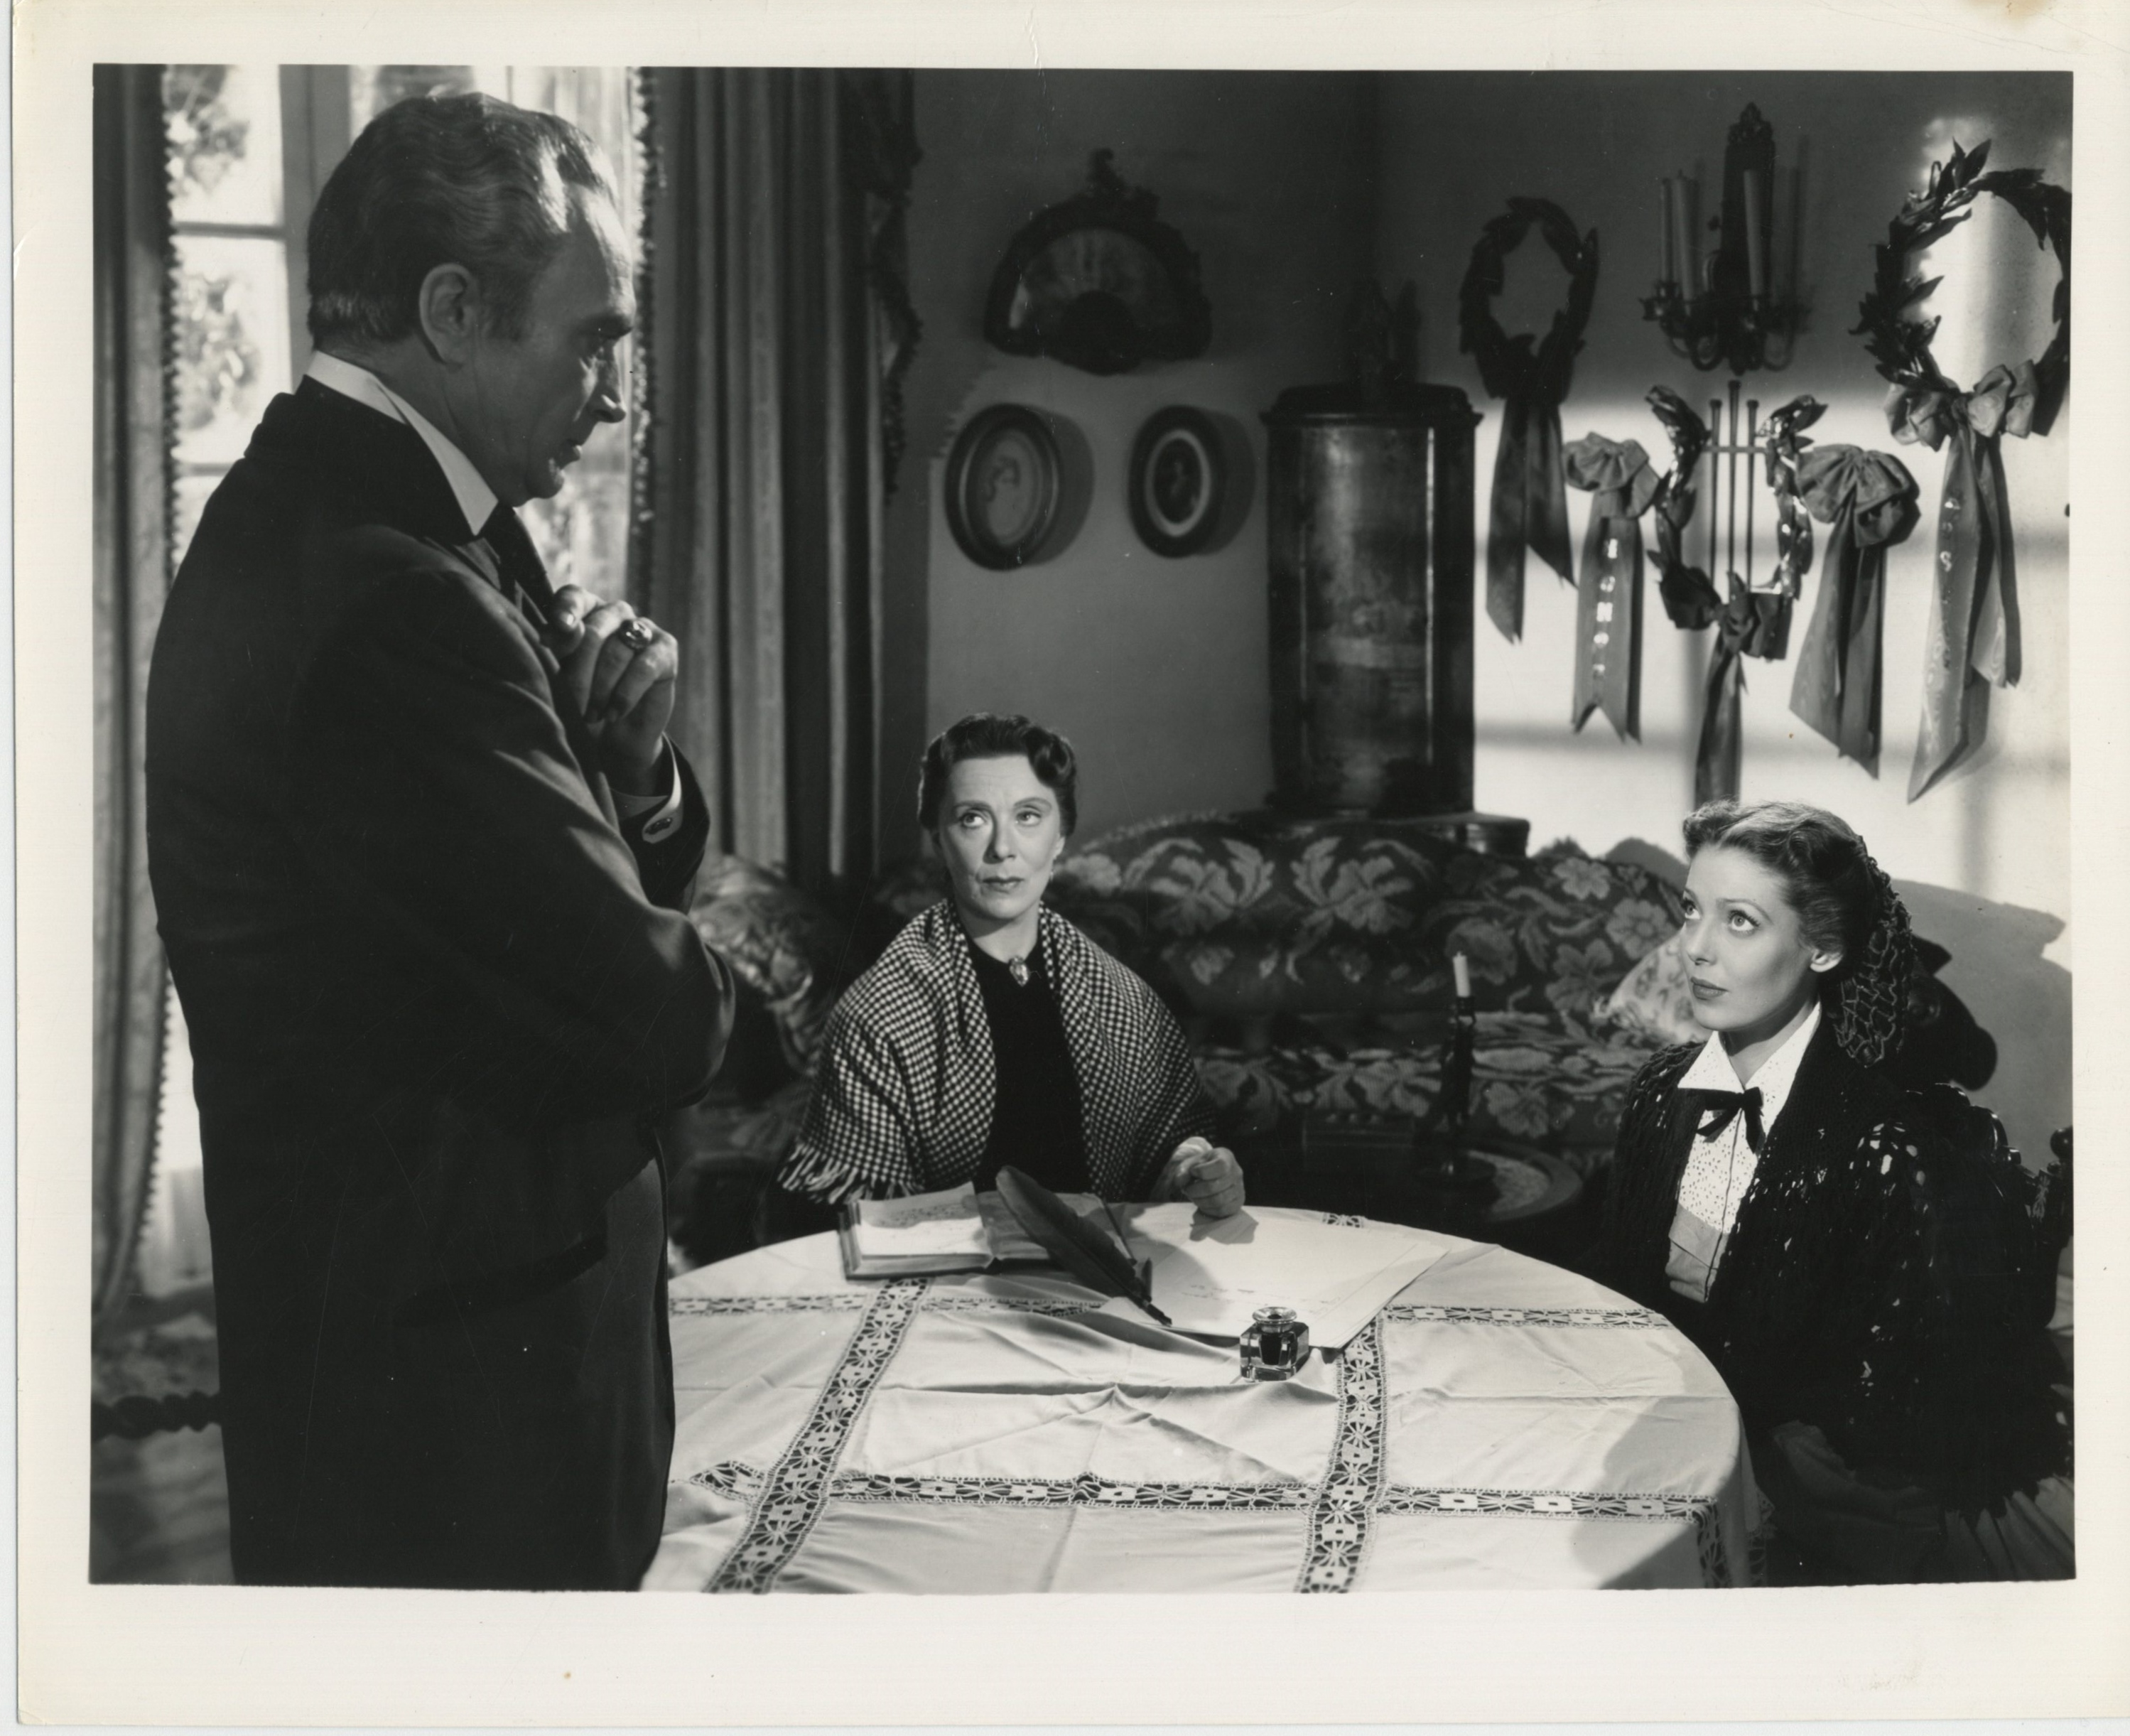 Eugenie Leontovich, Conrad Veidt, and Loretta Young in The Men in Her Life (1941)